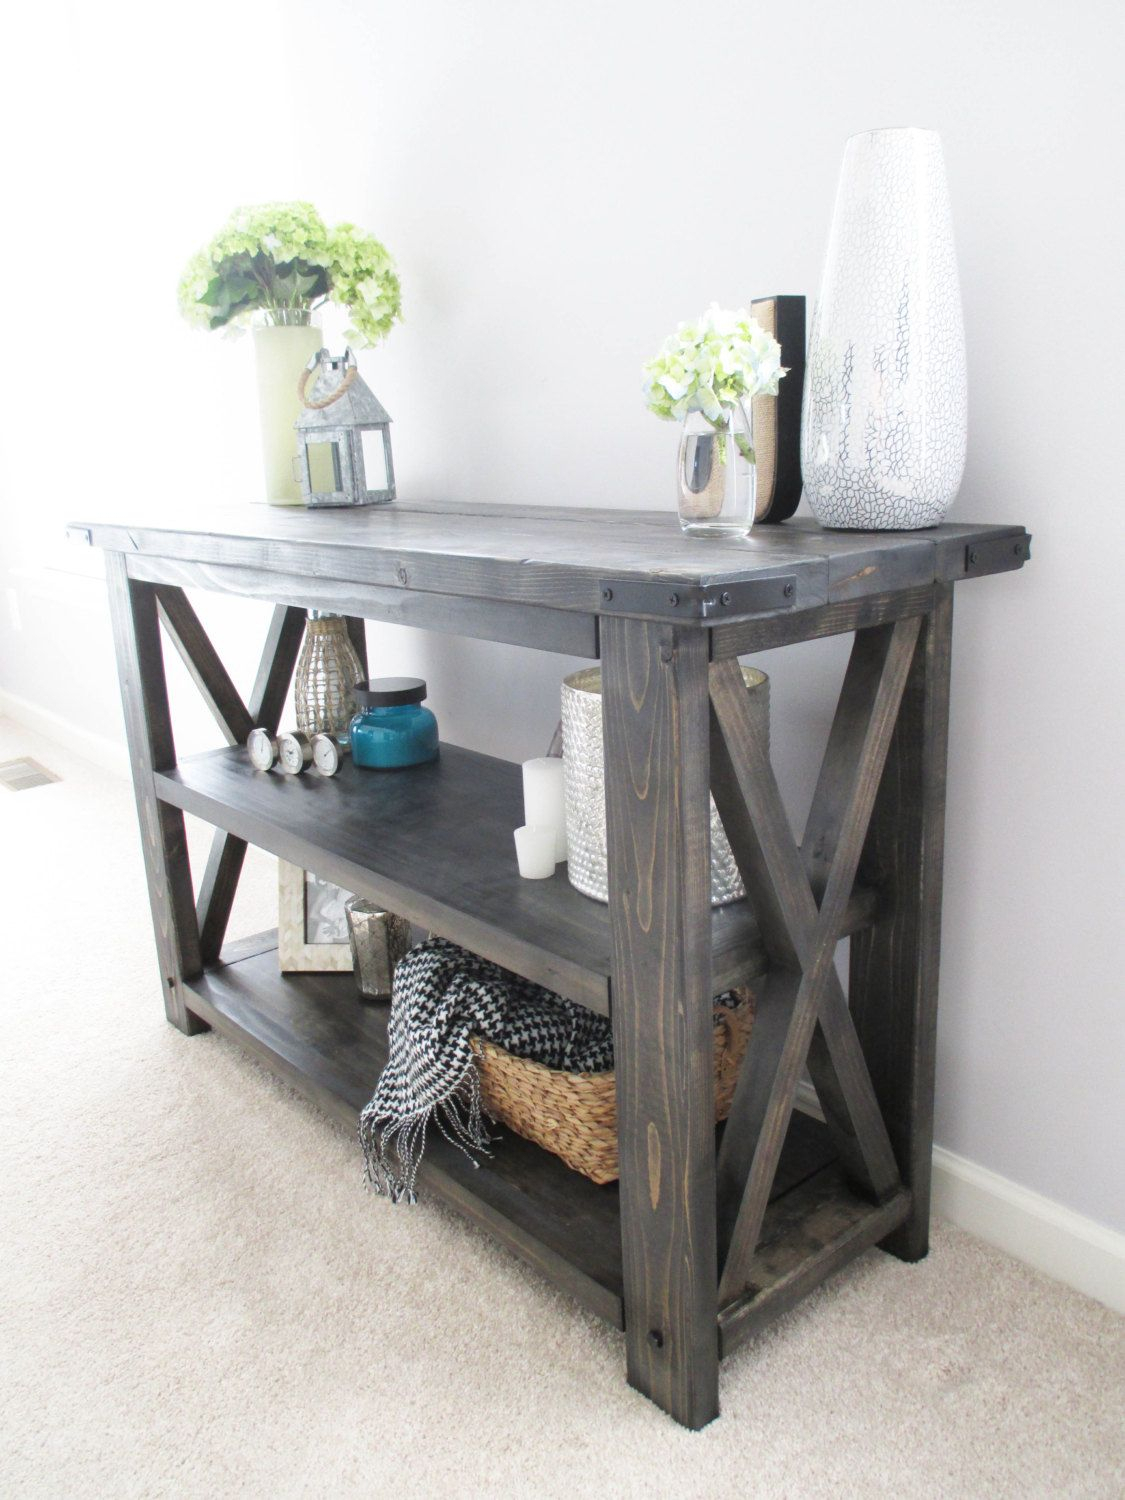 Rustic X Distressed Handmade Console / Media Table / Bookshelf - 48 with regard to Walters Media Console Tables (Image 18 of 30)